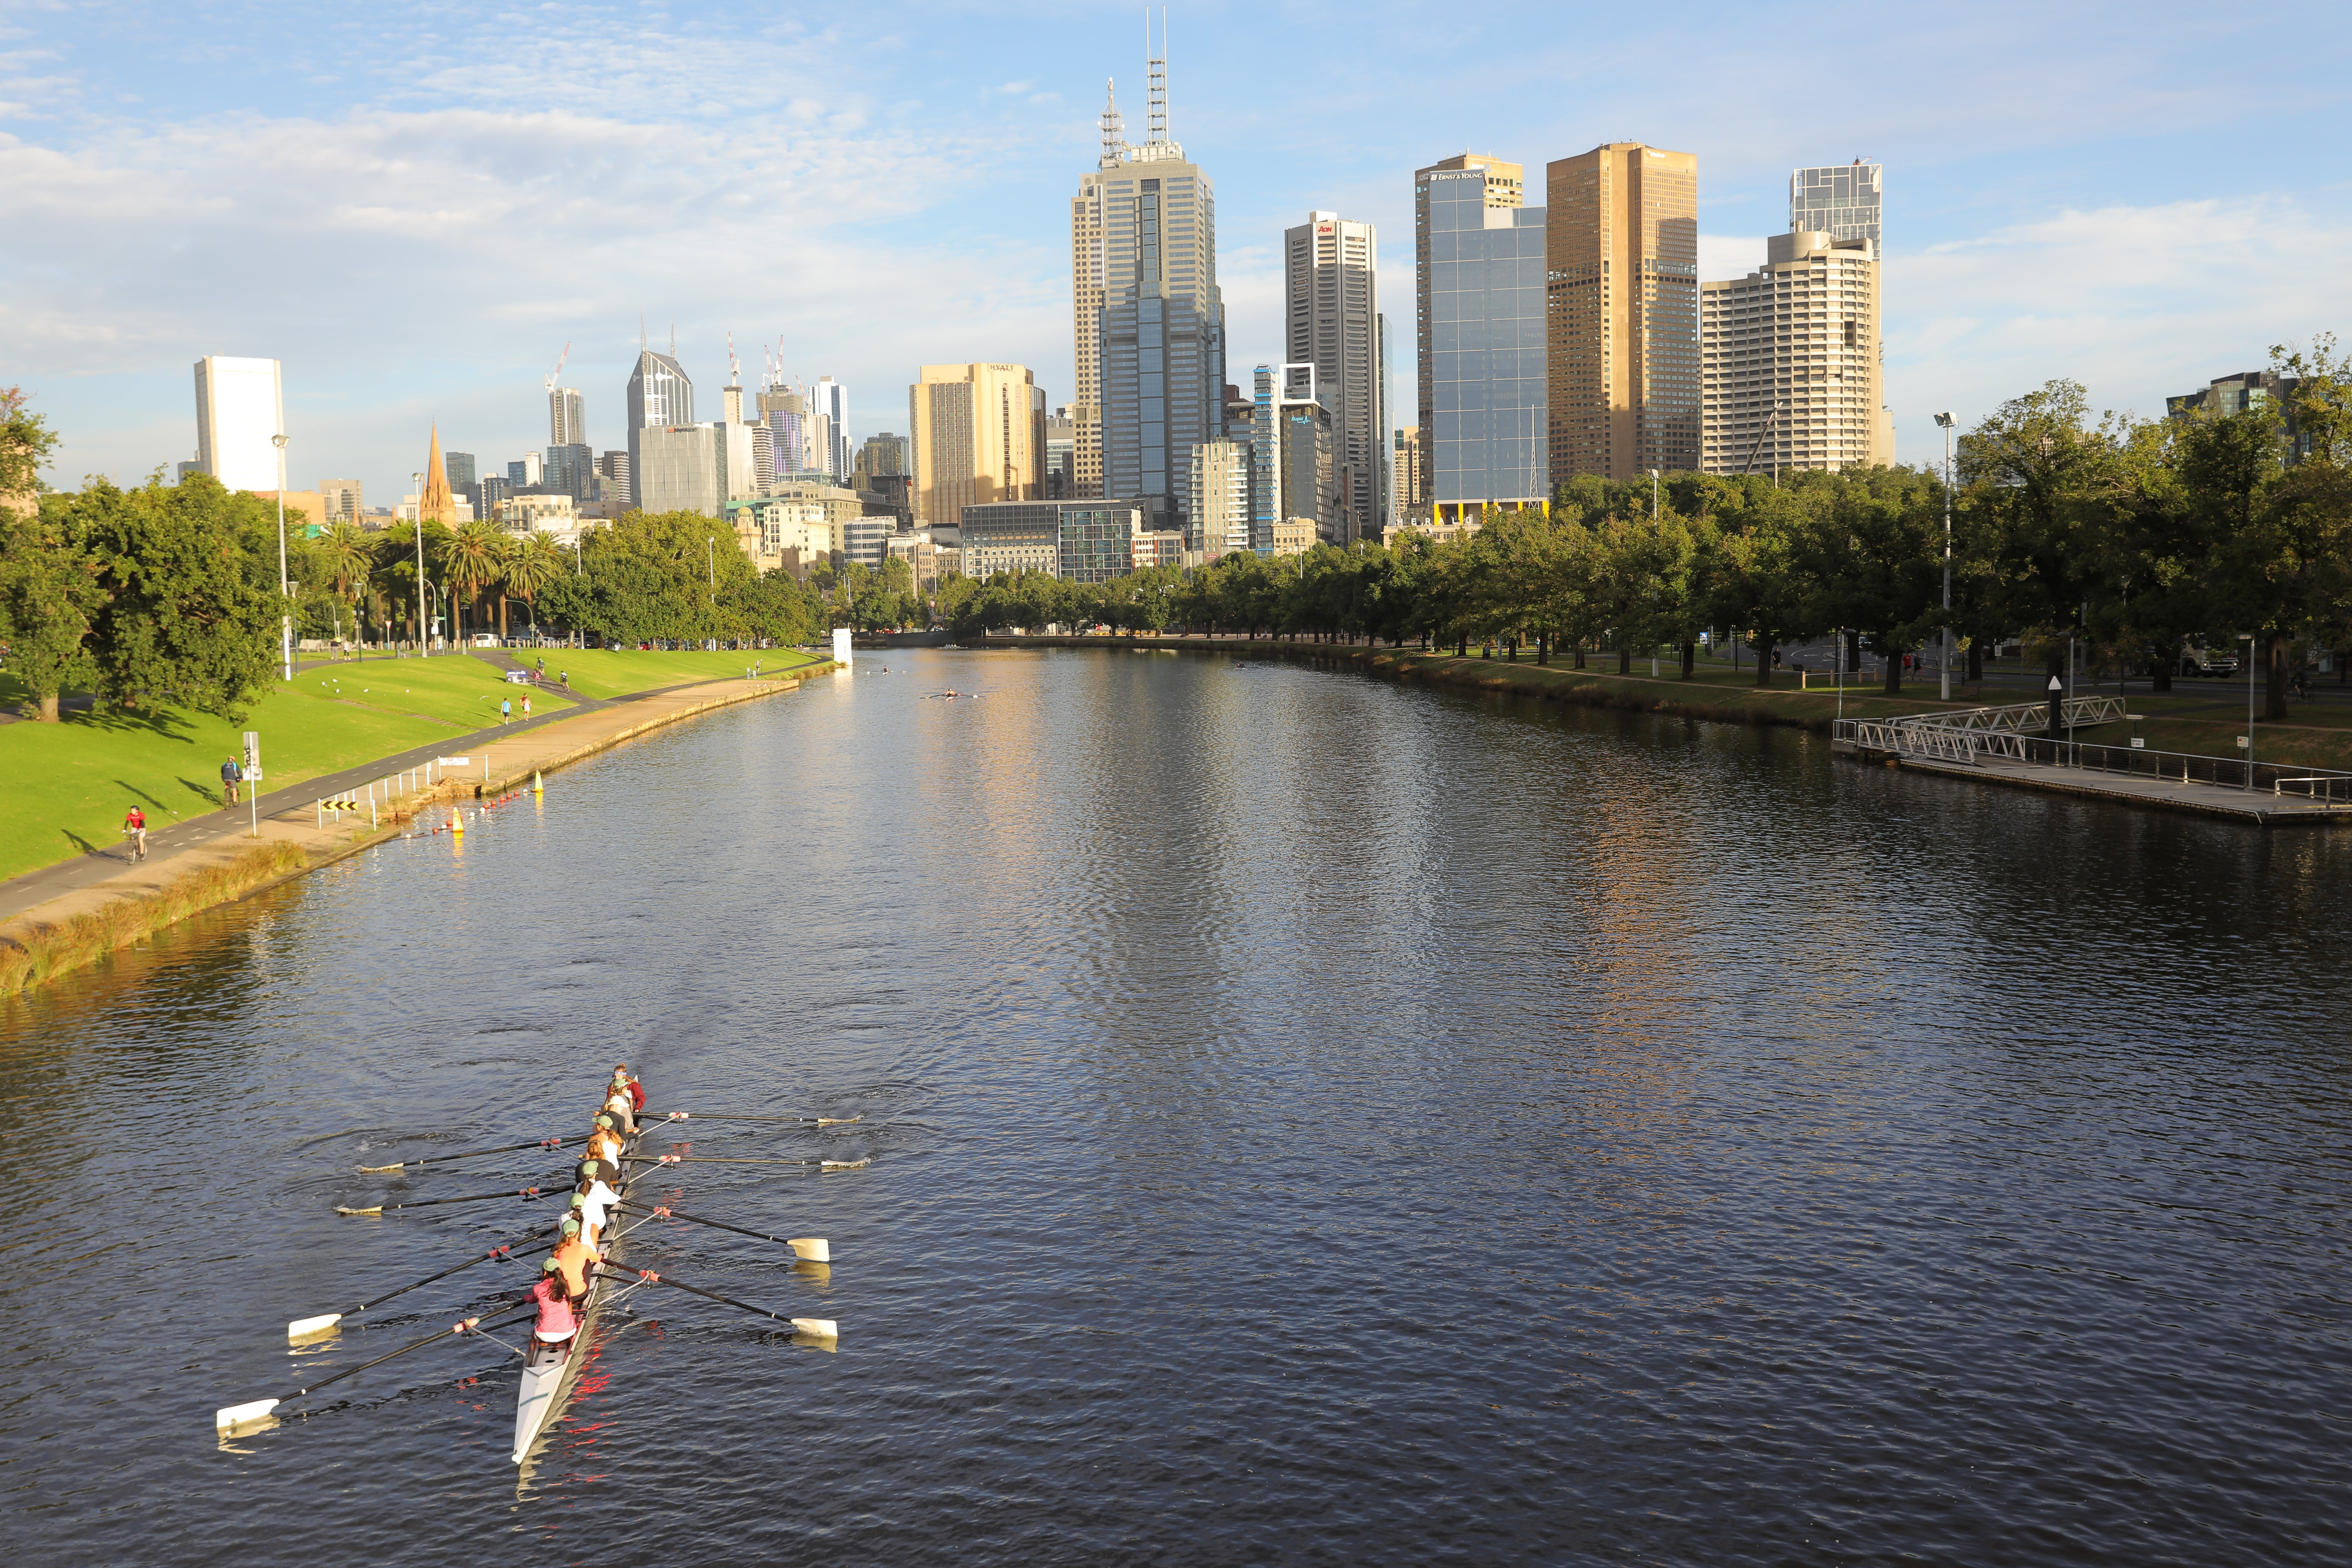 Free stock photo of city, melbourne, river, rower